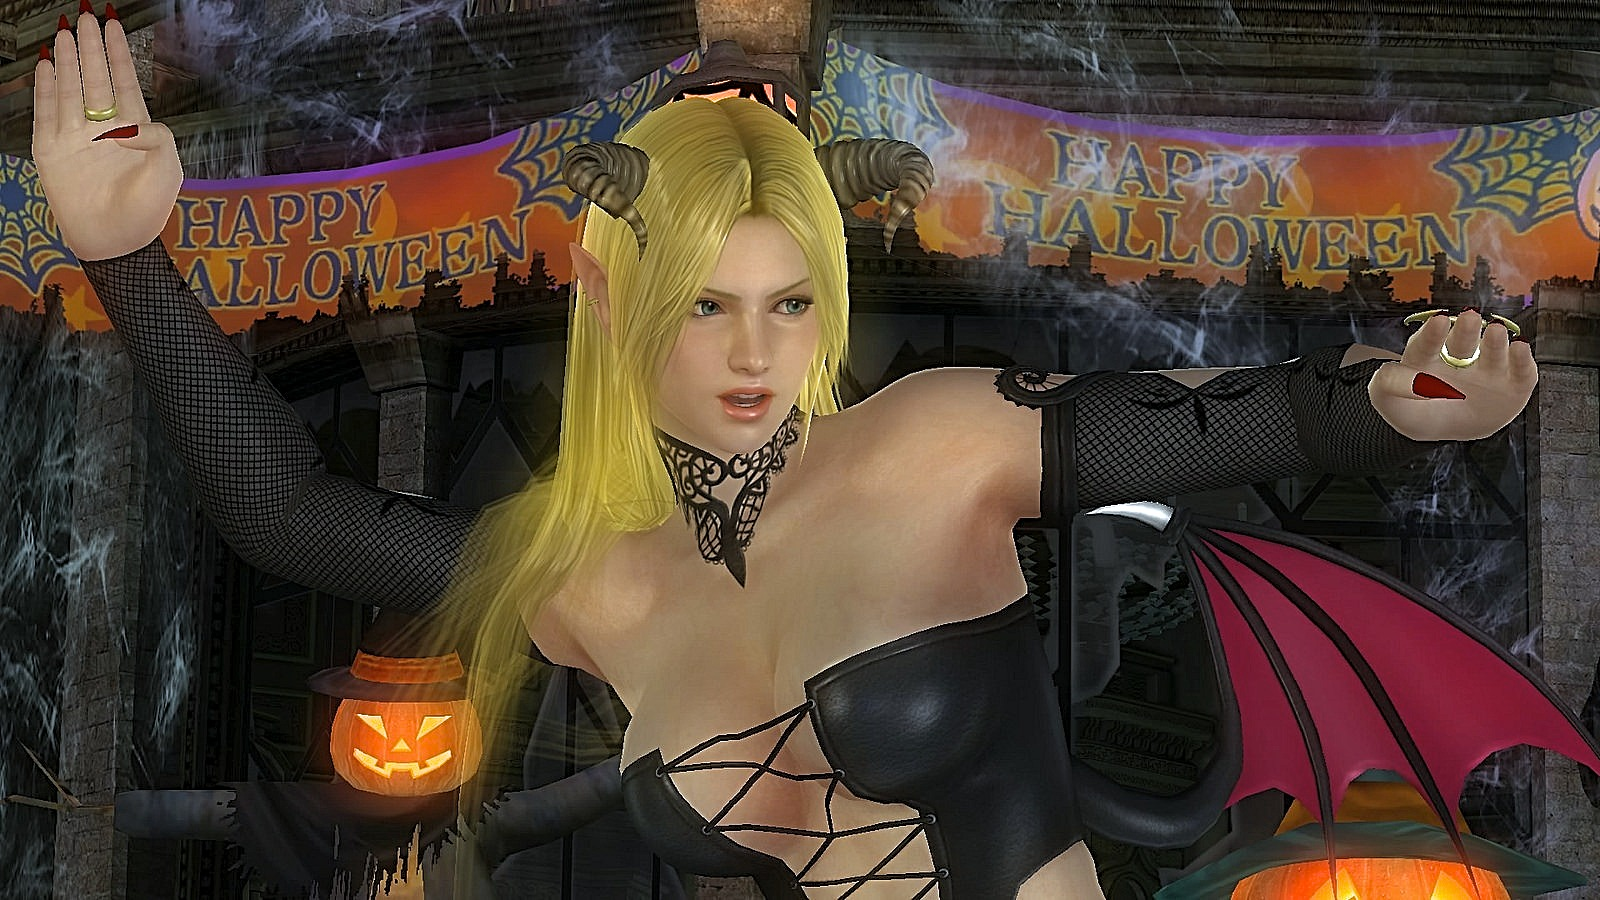 17276524526_9d88fbda4a_h (2).jpg - Dead or Alive 5: Last Round